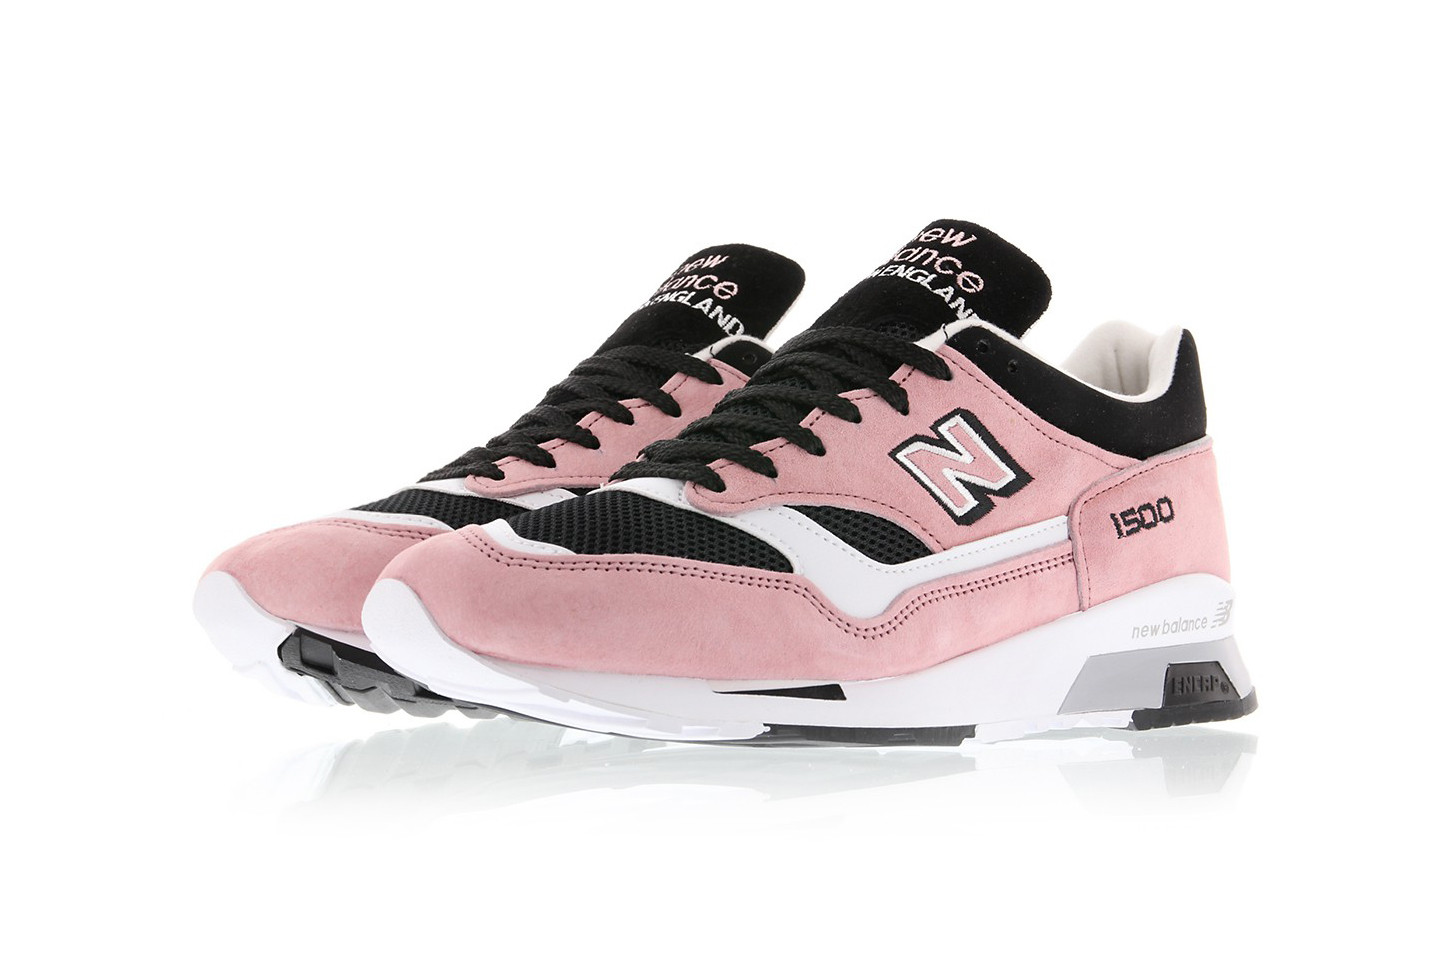 This Pink and Black New Balance 1500 Is